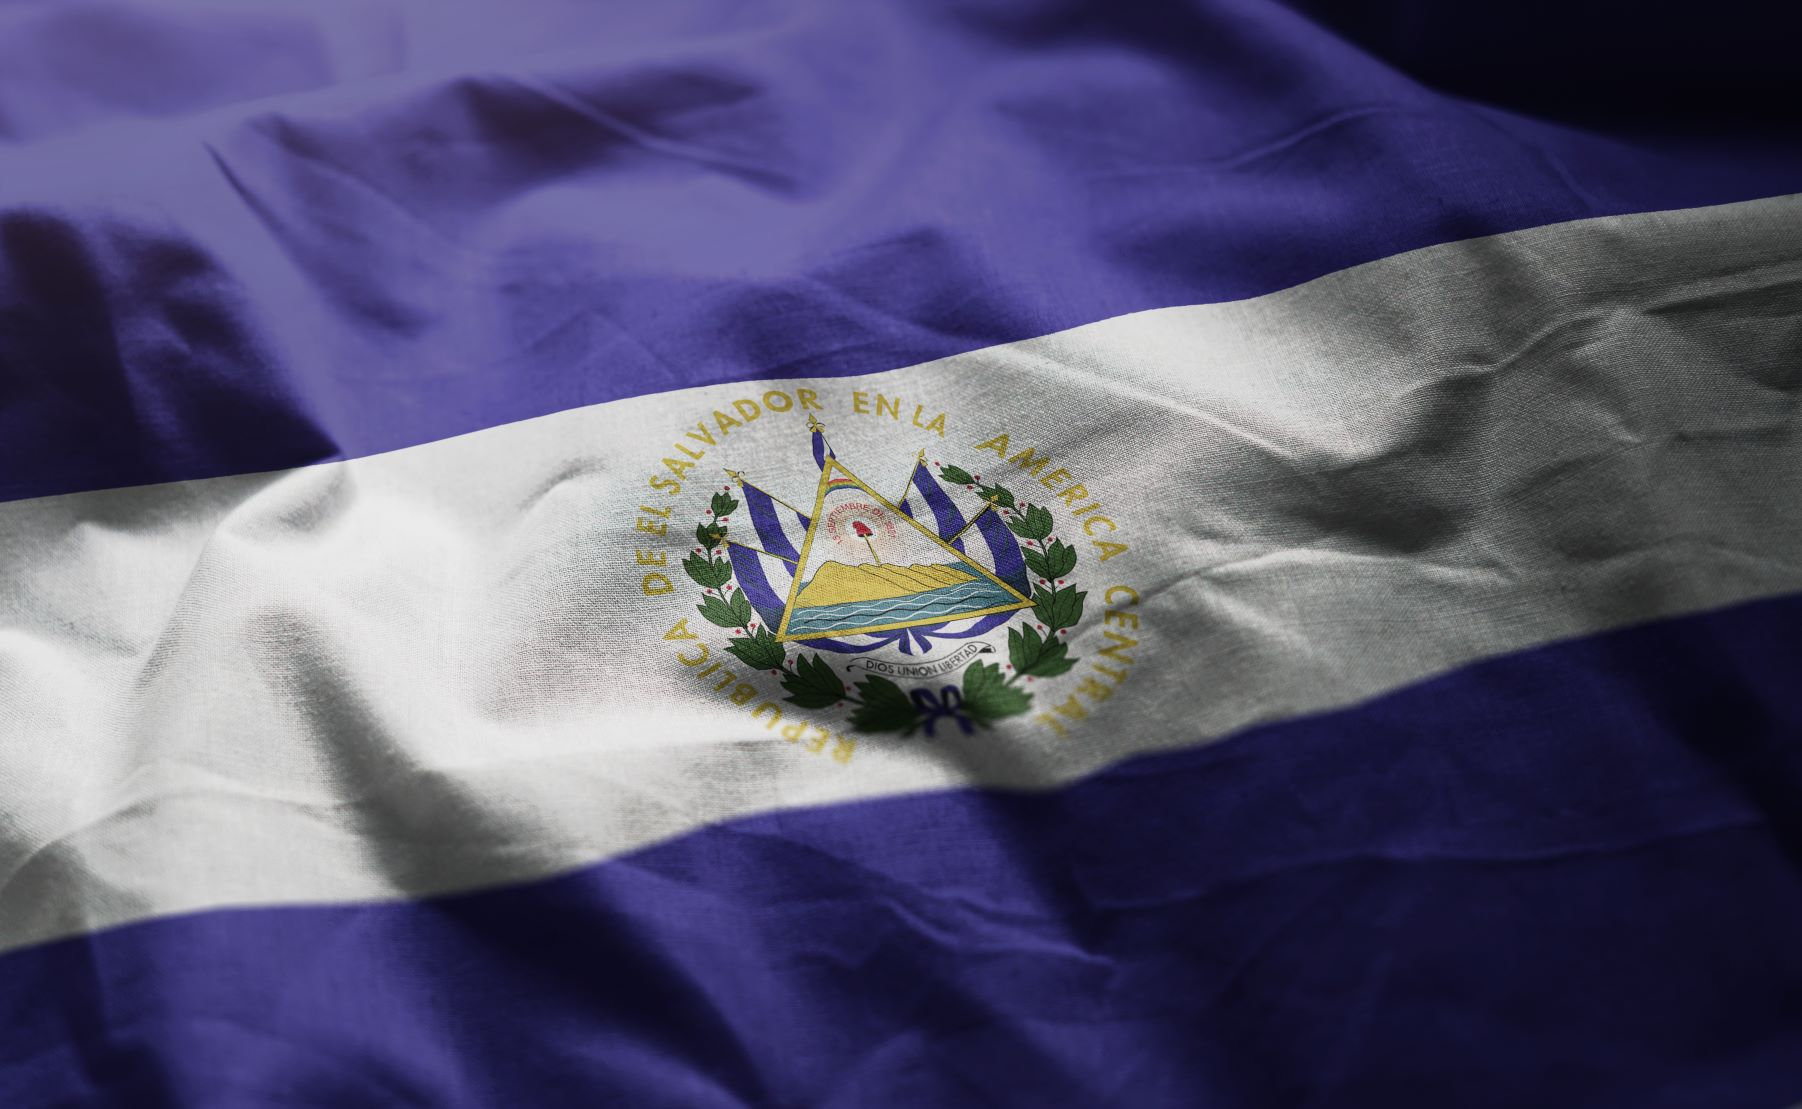 El Salvador: IMF comments seem to play down programme prospects